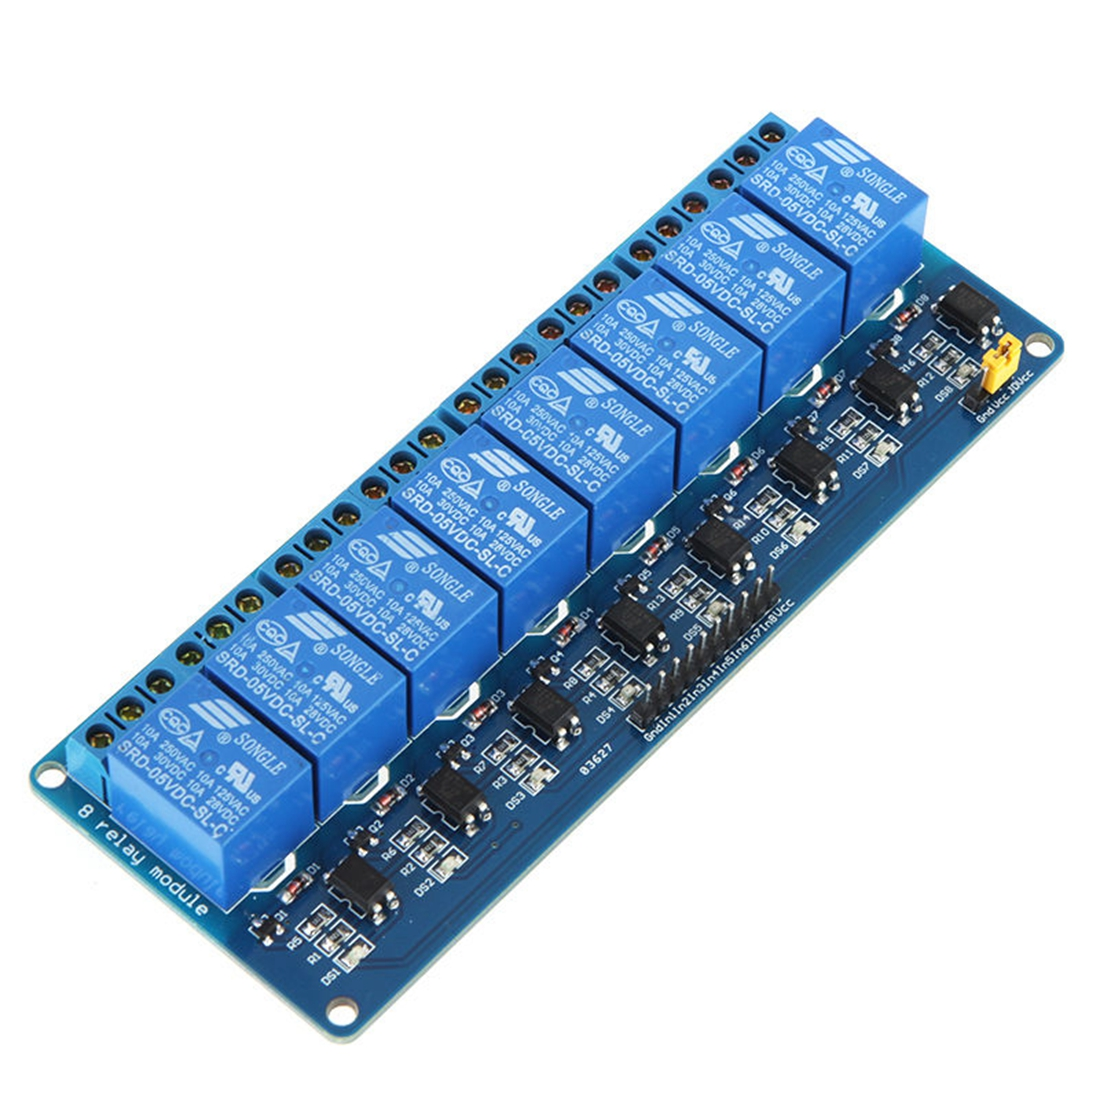 5V 8 Channel Relay Module Board For Arduino AVR PIC MCU DSP ARM 5v 4 channel relay module for arduino pic arm dsp avr msp430 blue